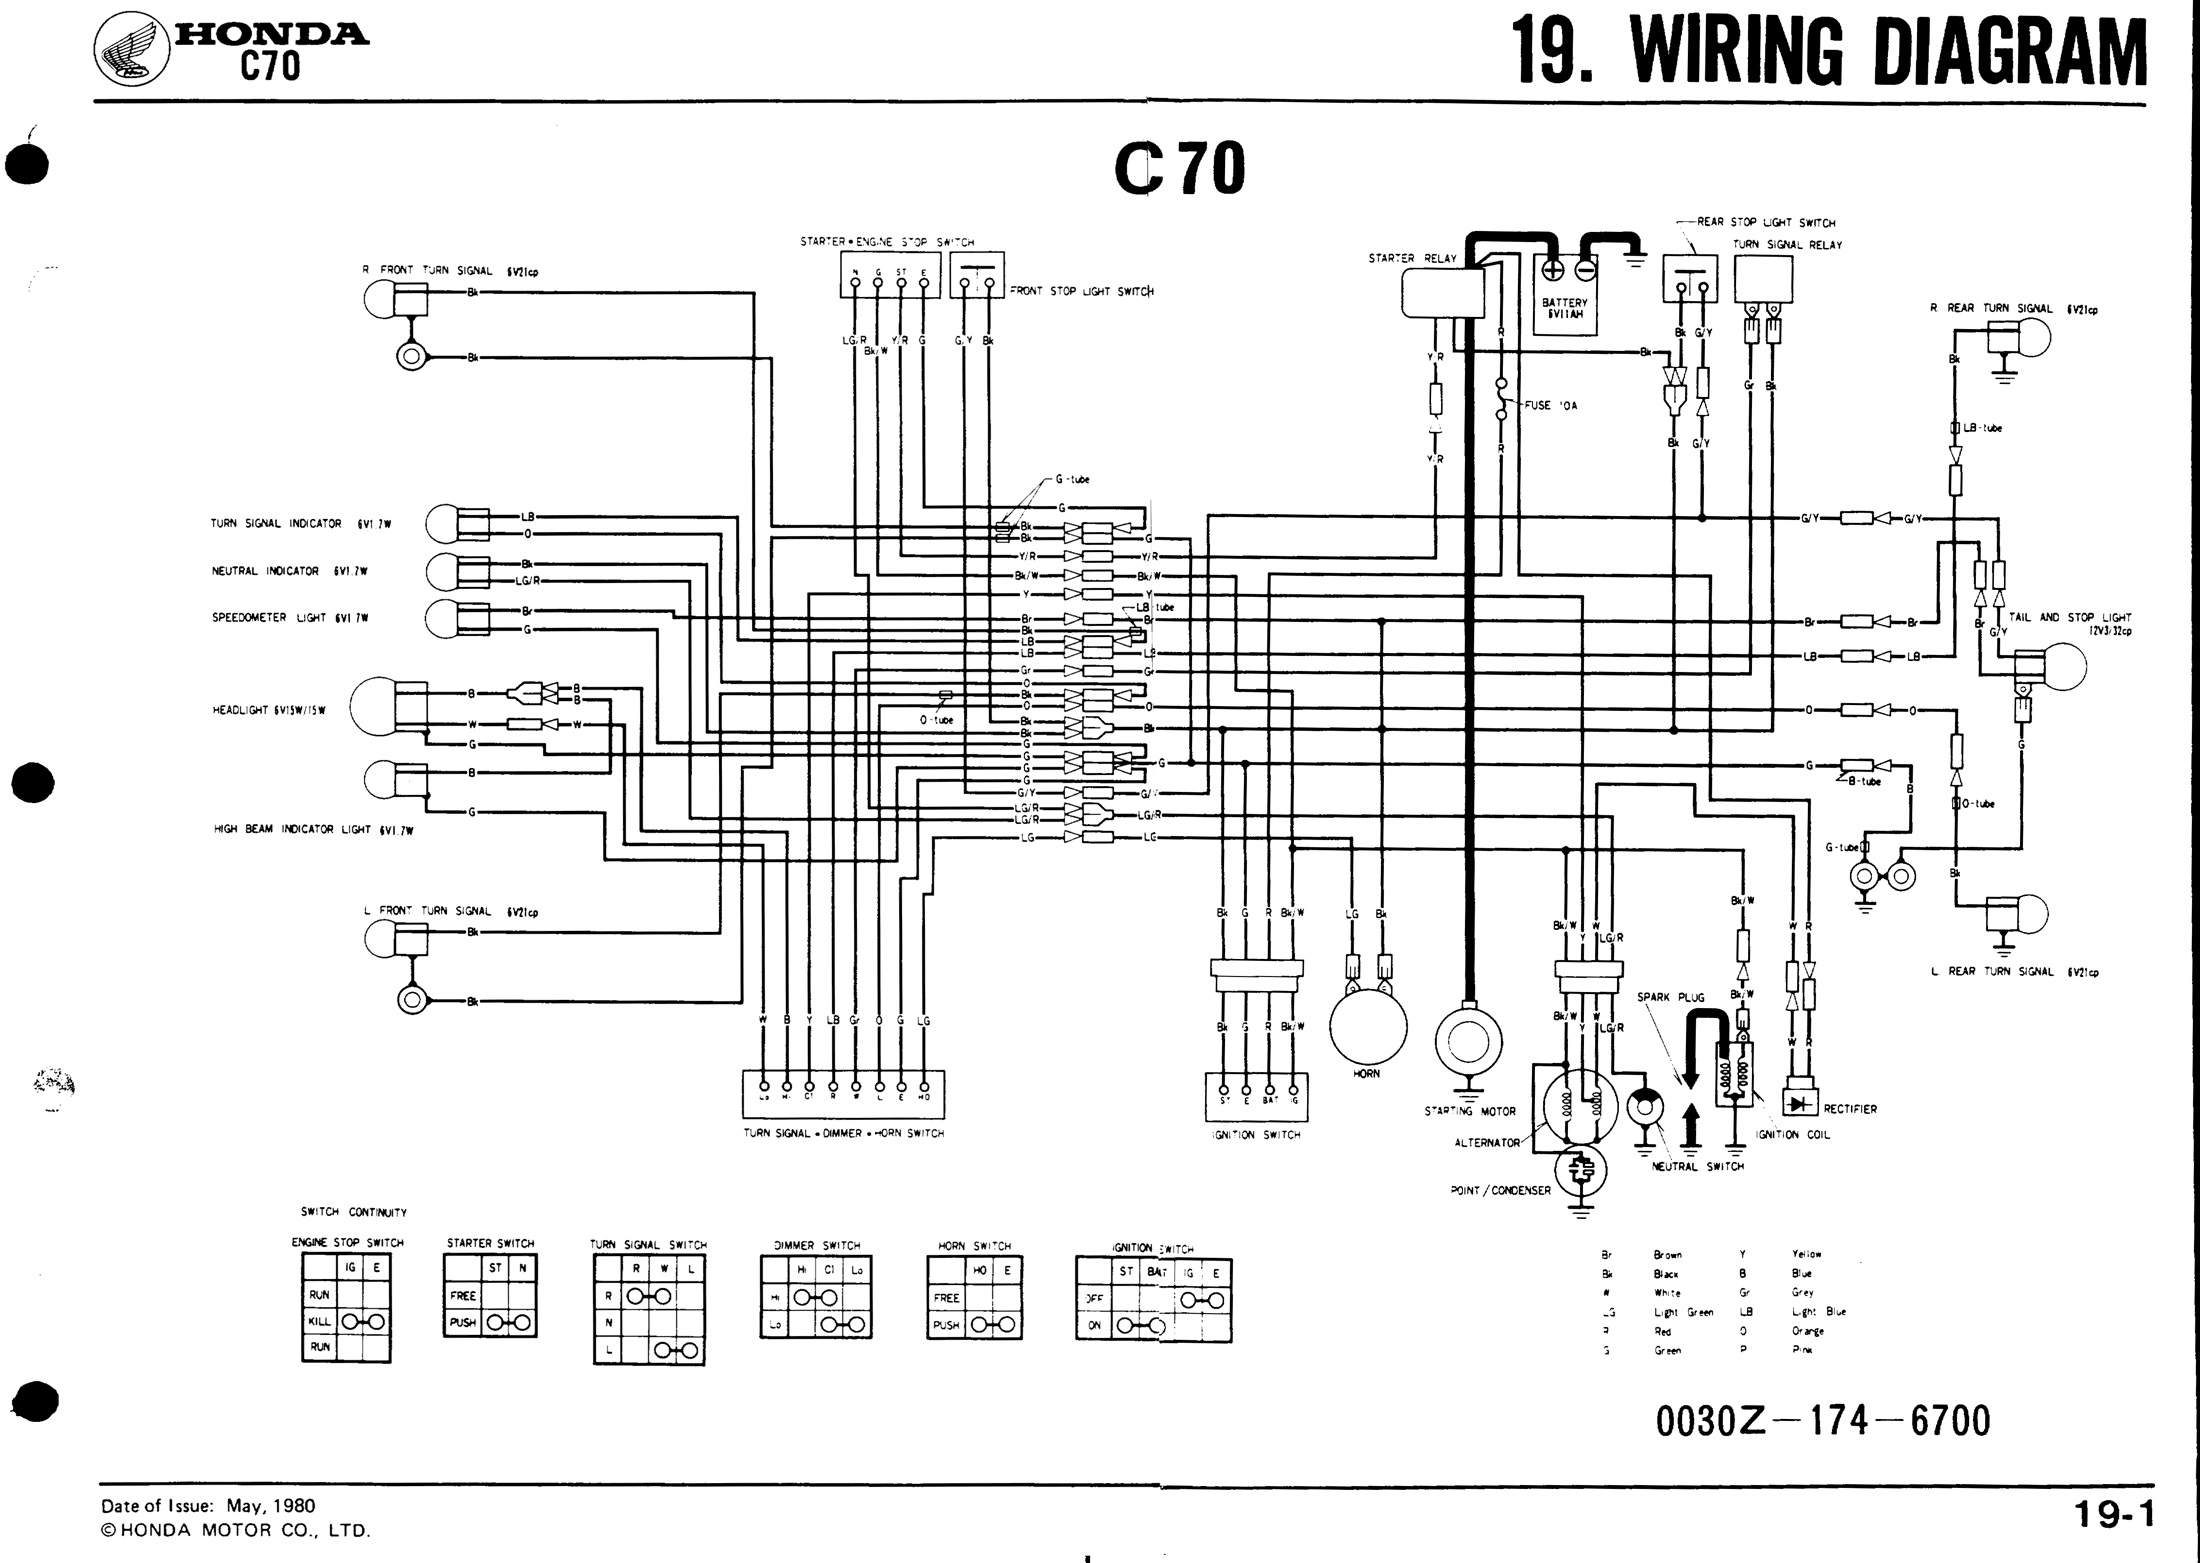 Ford F 53 Motorhome Chassis 1996 Fuse Box Diagram as well Plc wiringa6 further 150 C70 moreover Rv Battery Disconnect Switch Wiring Diagram furthermore 1998 Ford Explorer Fuse Panel Diagram. on rv electrical system wiring diagram